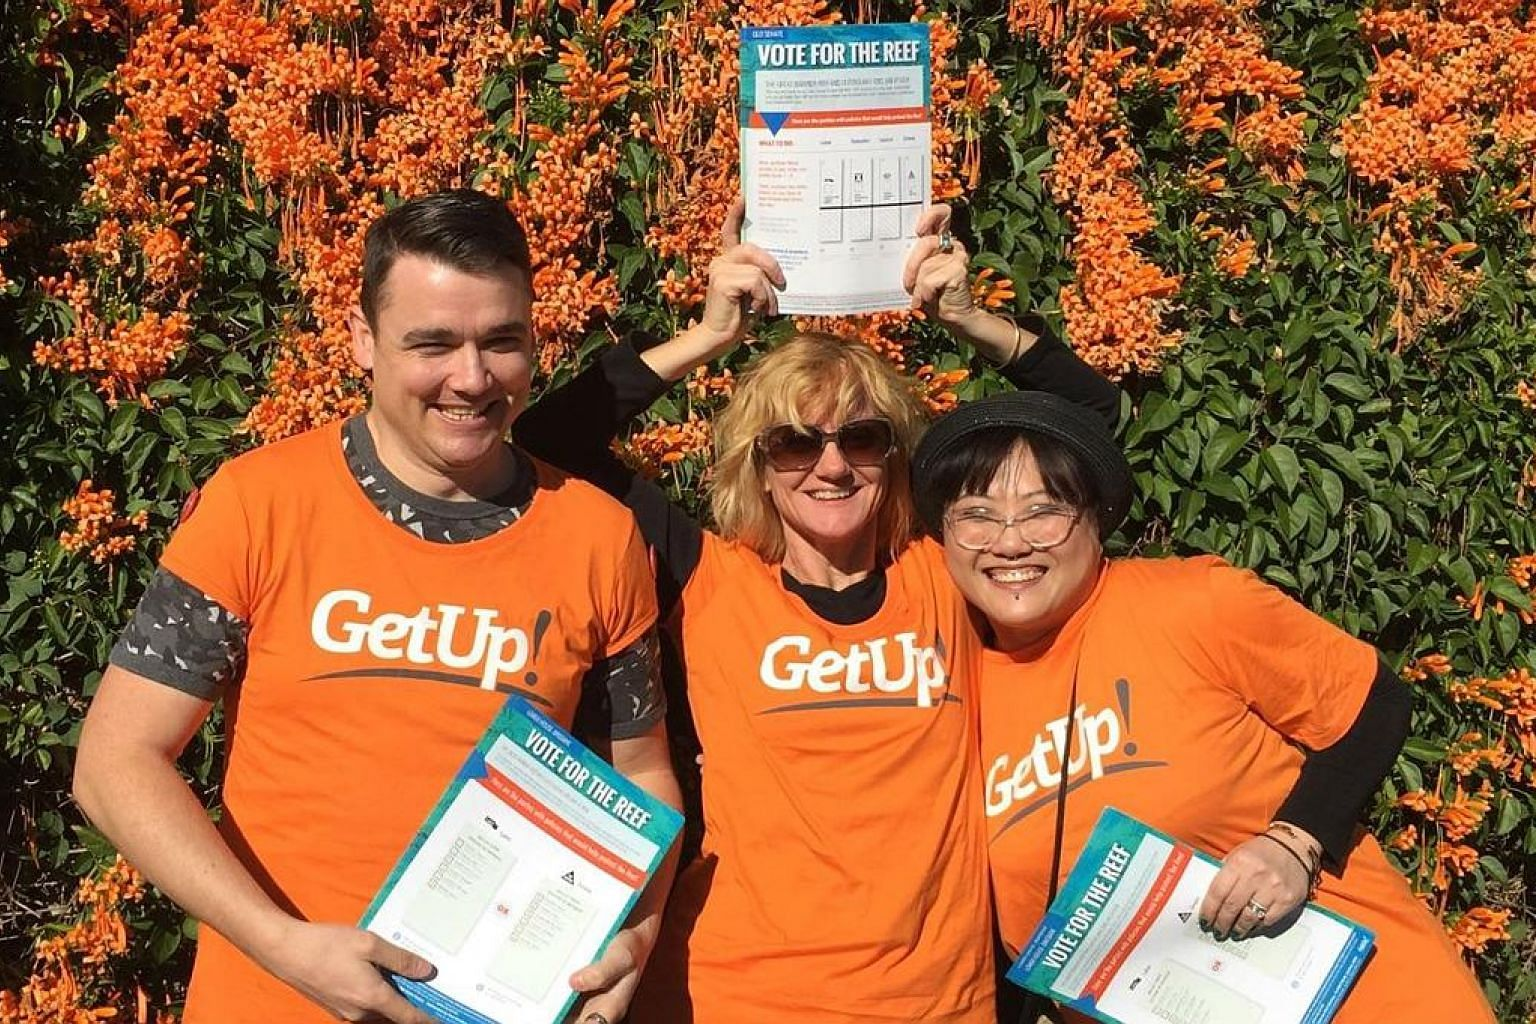 Home Affairs and Immigration Minister Peter Dutton is one of the right-wing MPs targeted by GetUp's campaign. GetUp is a progressive grassroots organisation that is playing a major role in the current federal election campaign in Australia. The group